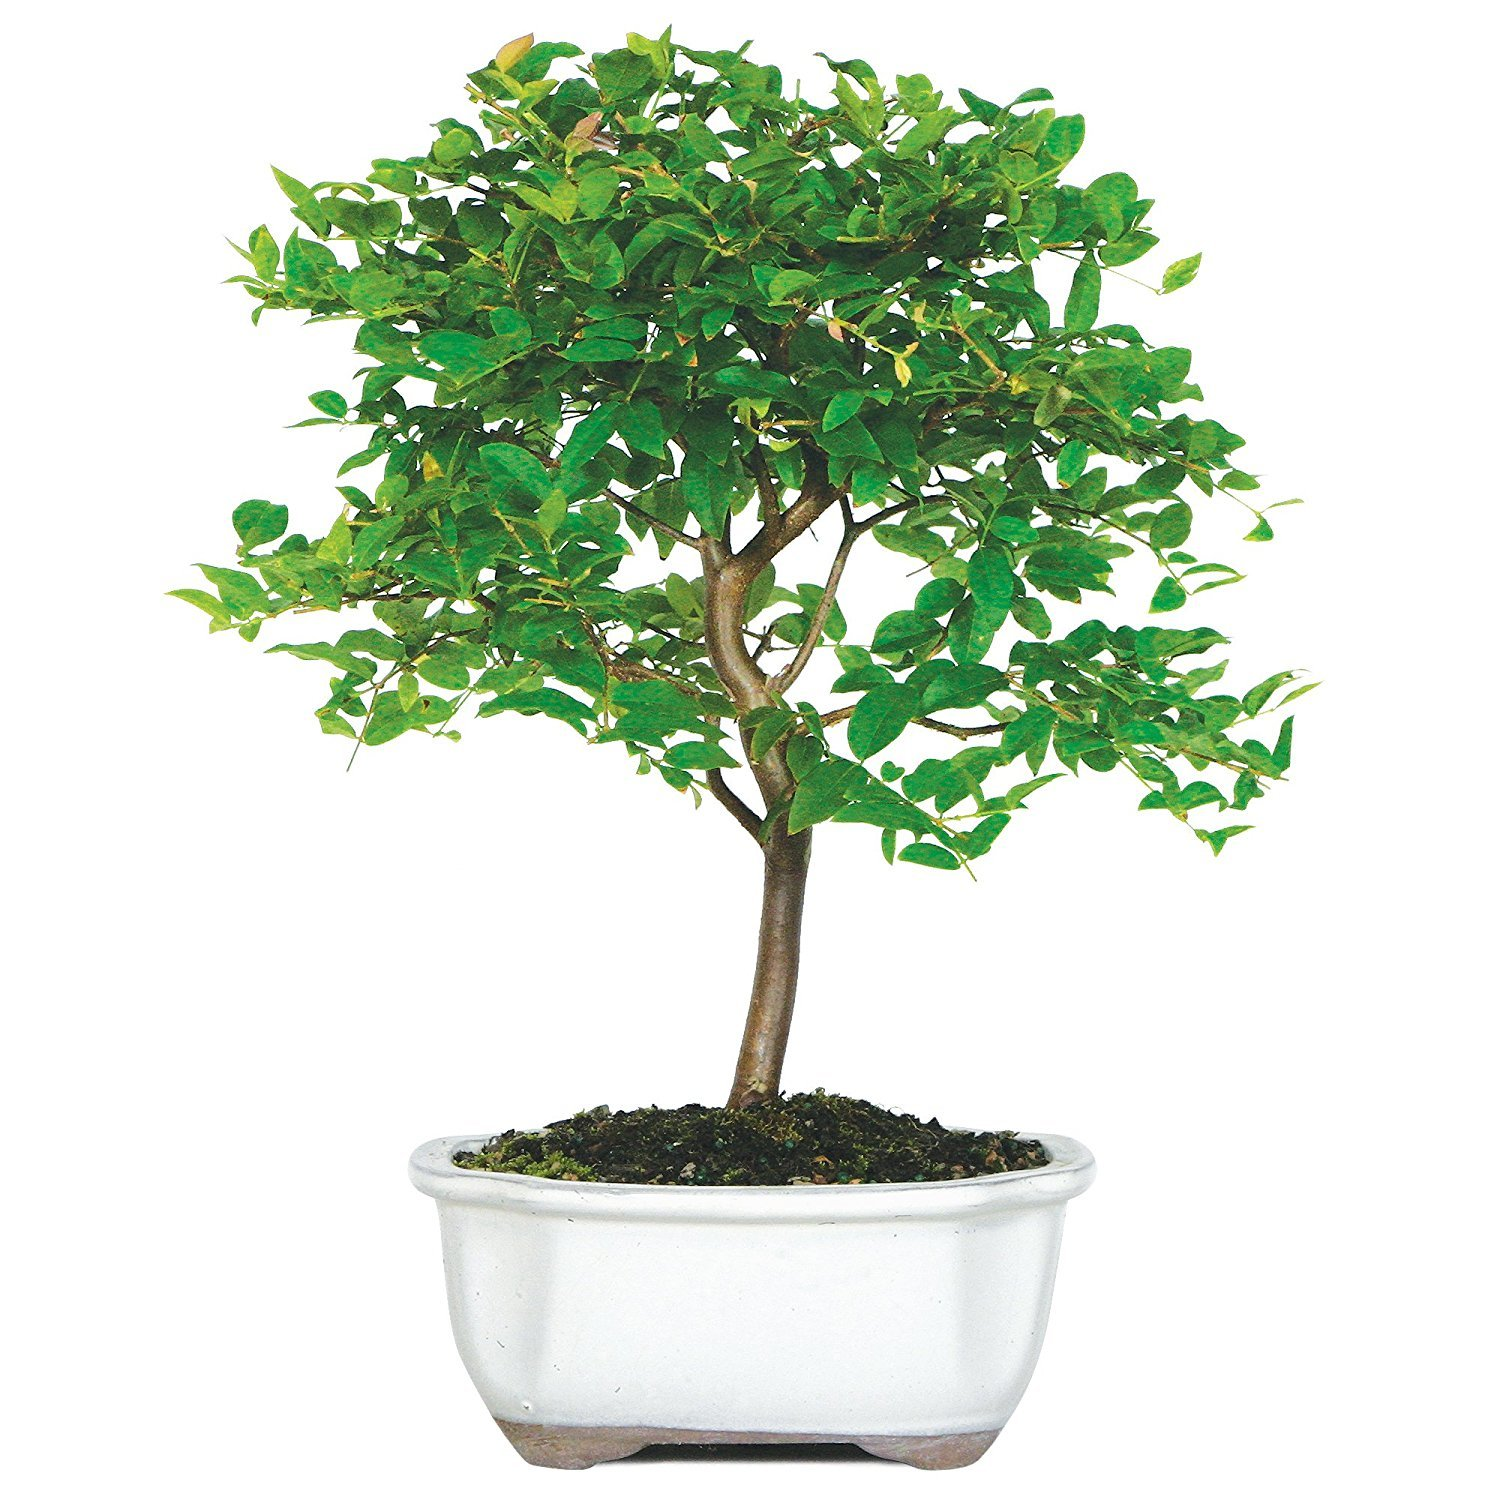 Brussels Live Fukien Tea Indoor Bonsai Tree 6 Years Old; 6 to 10 Tall with Decorative Container